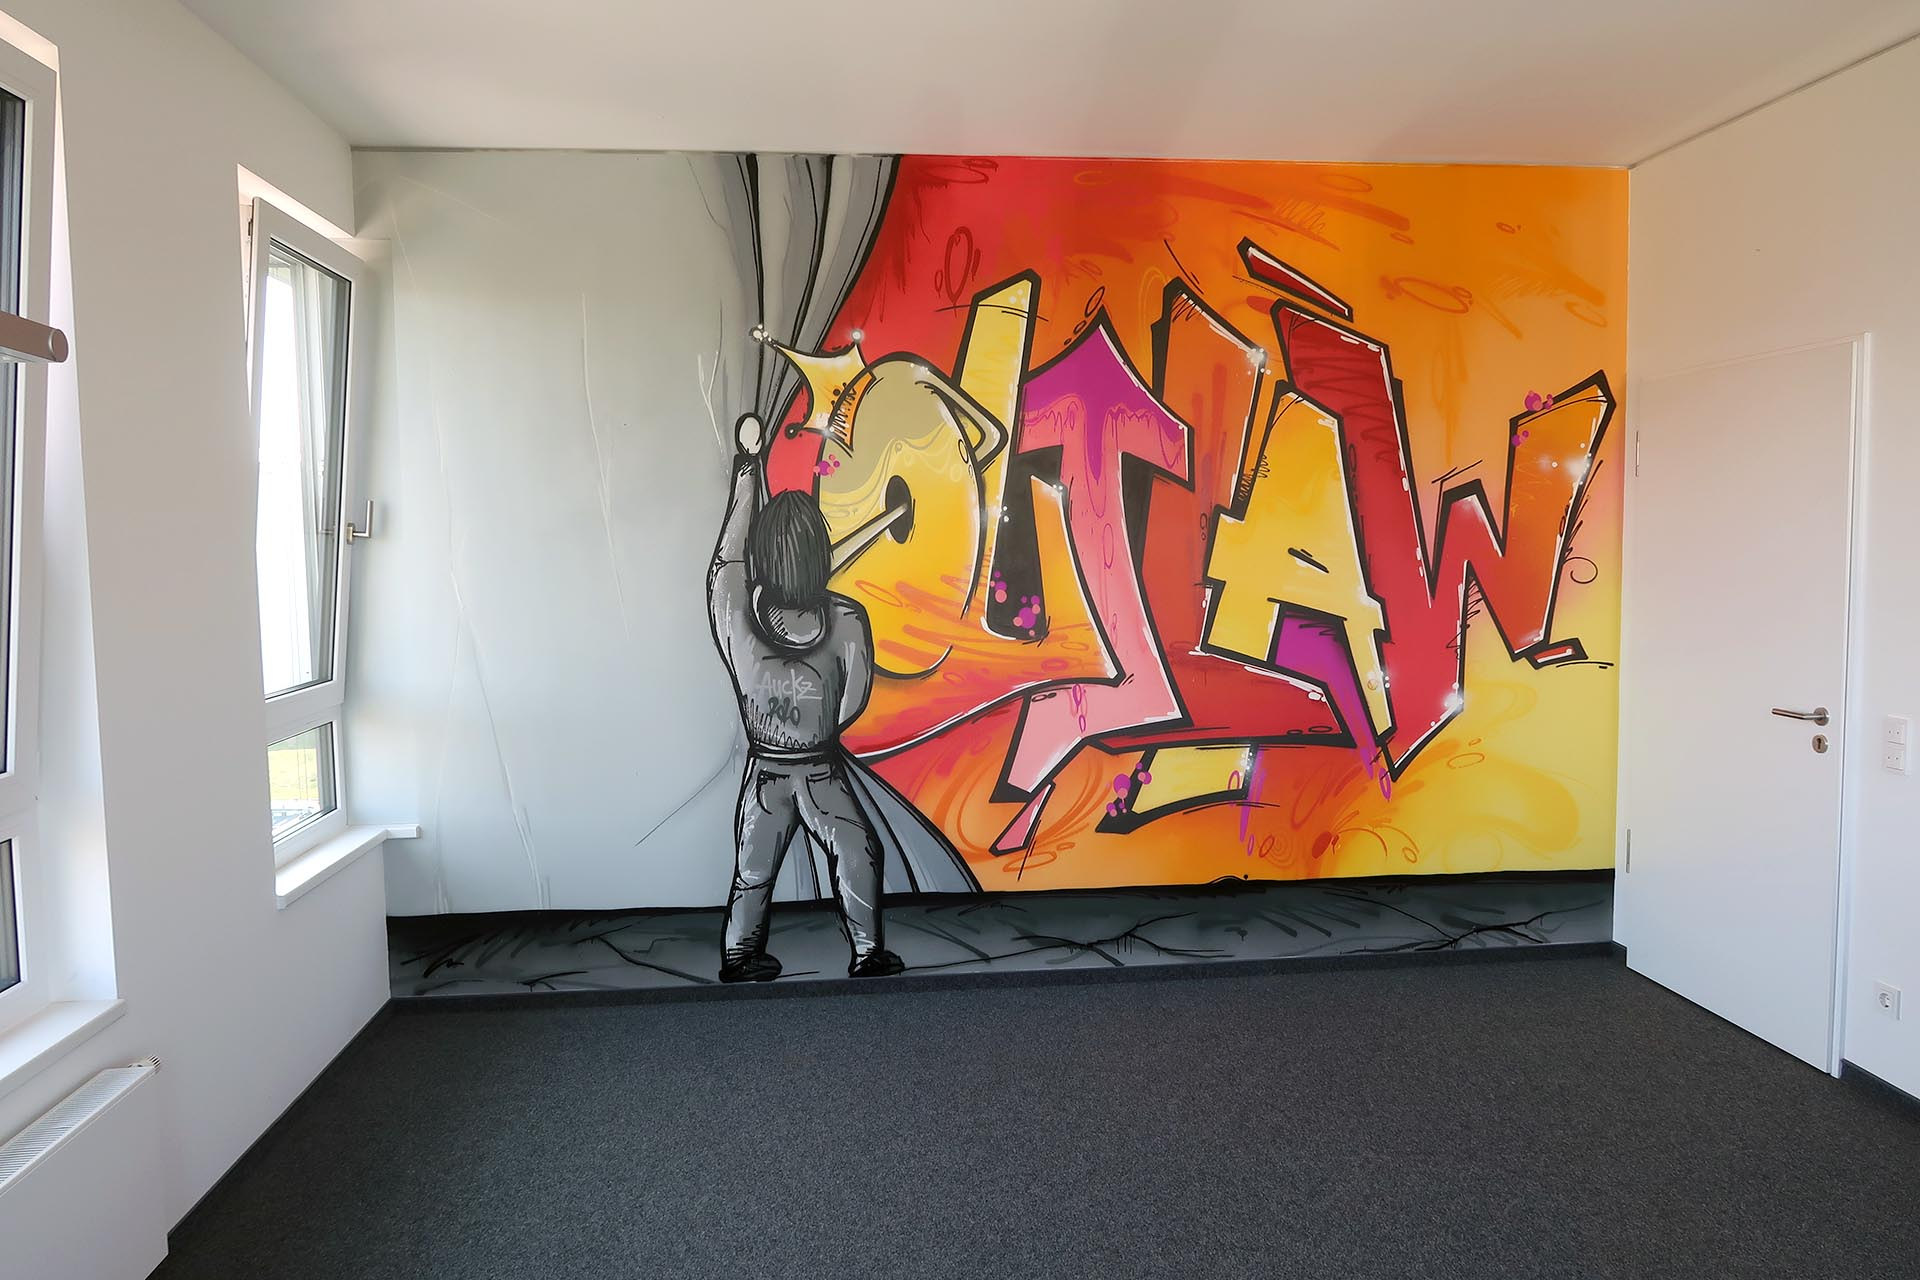 Graffiti, Münster, Studio, Auckz, Outlaw